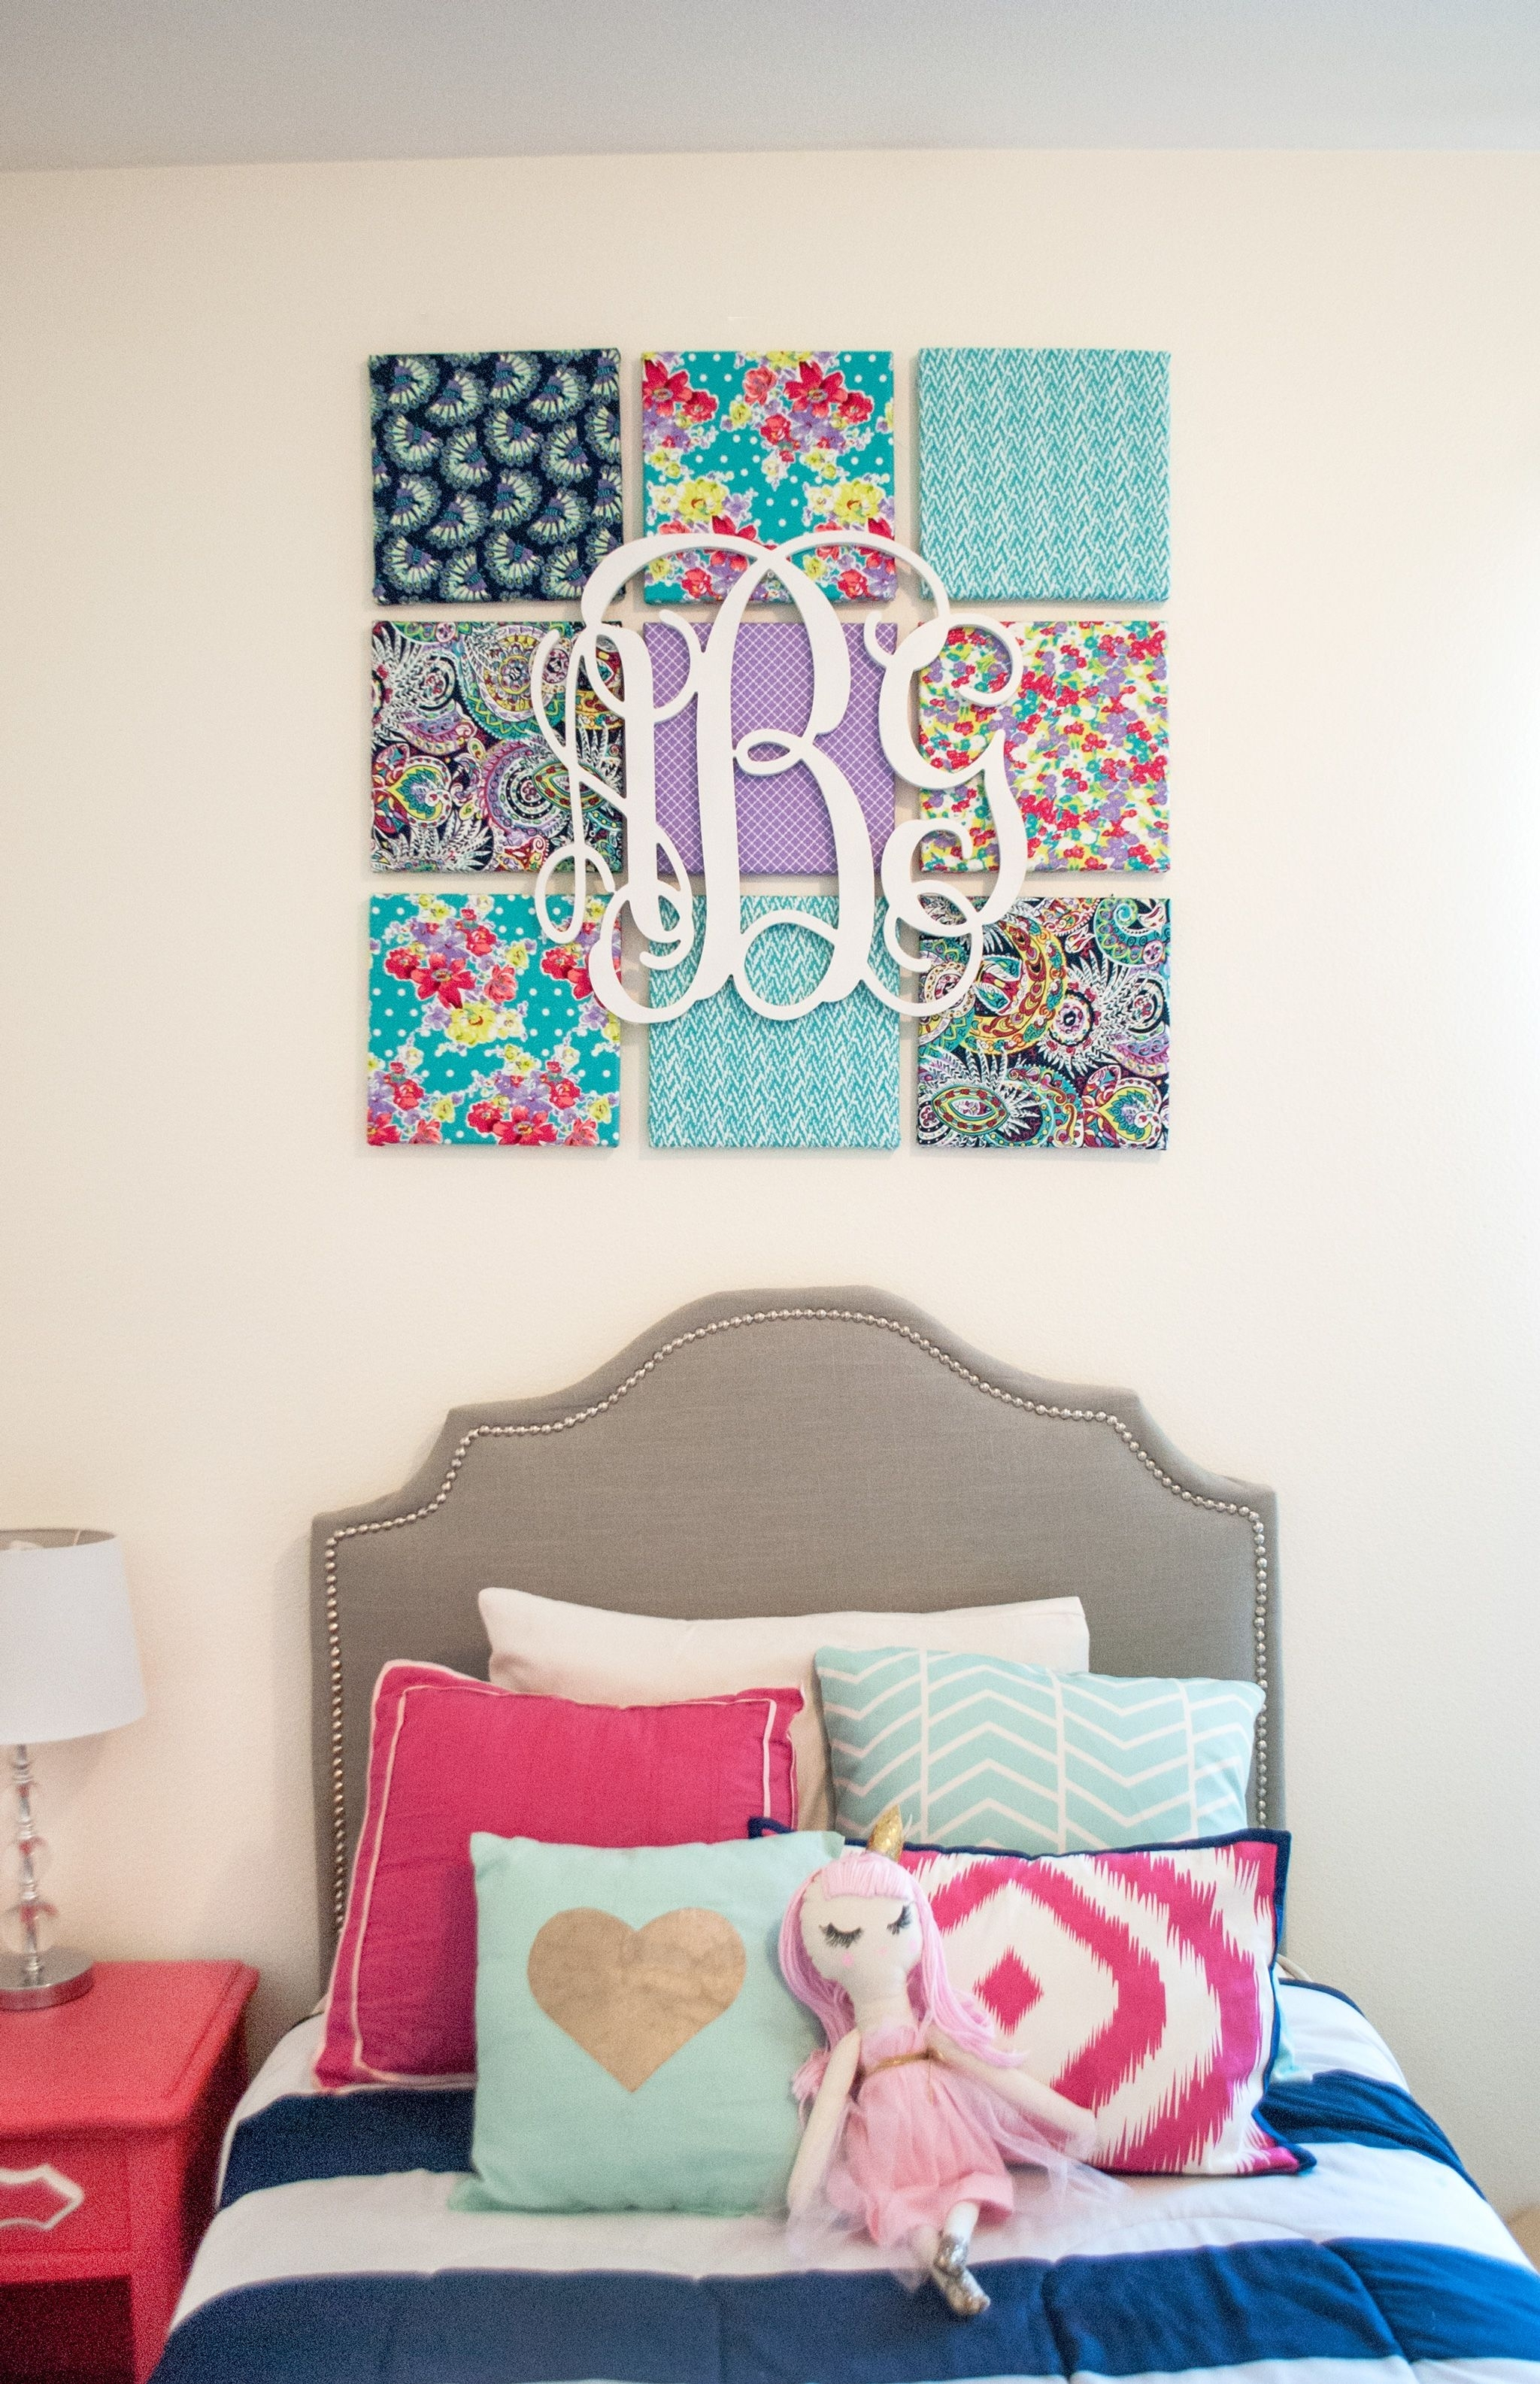 Diy Fabric Wall Art | Monogram Wall, Kids Rooms And Monograms With Best And Newest Childrens Fabric Wall Art (View 1 of 15)